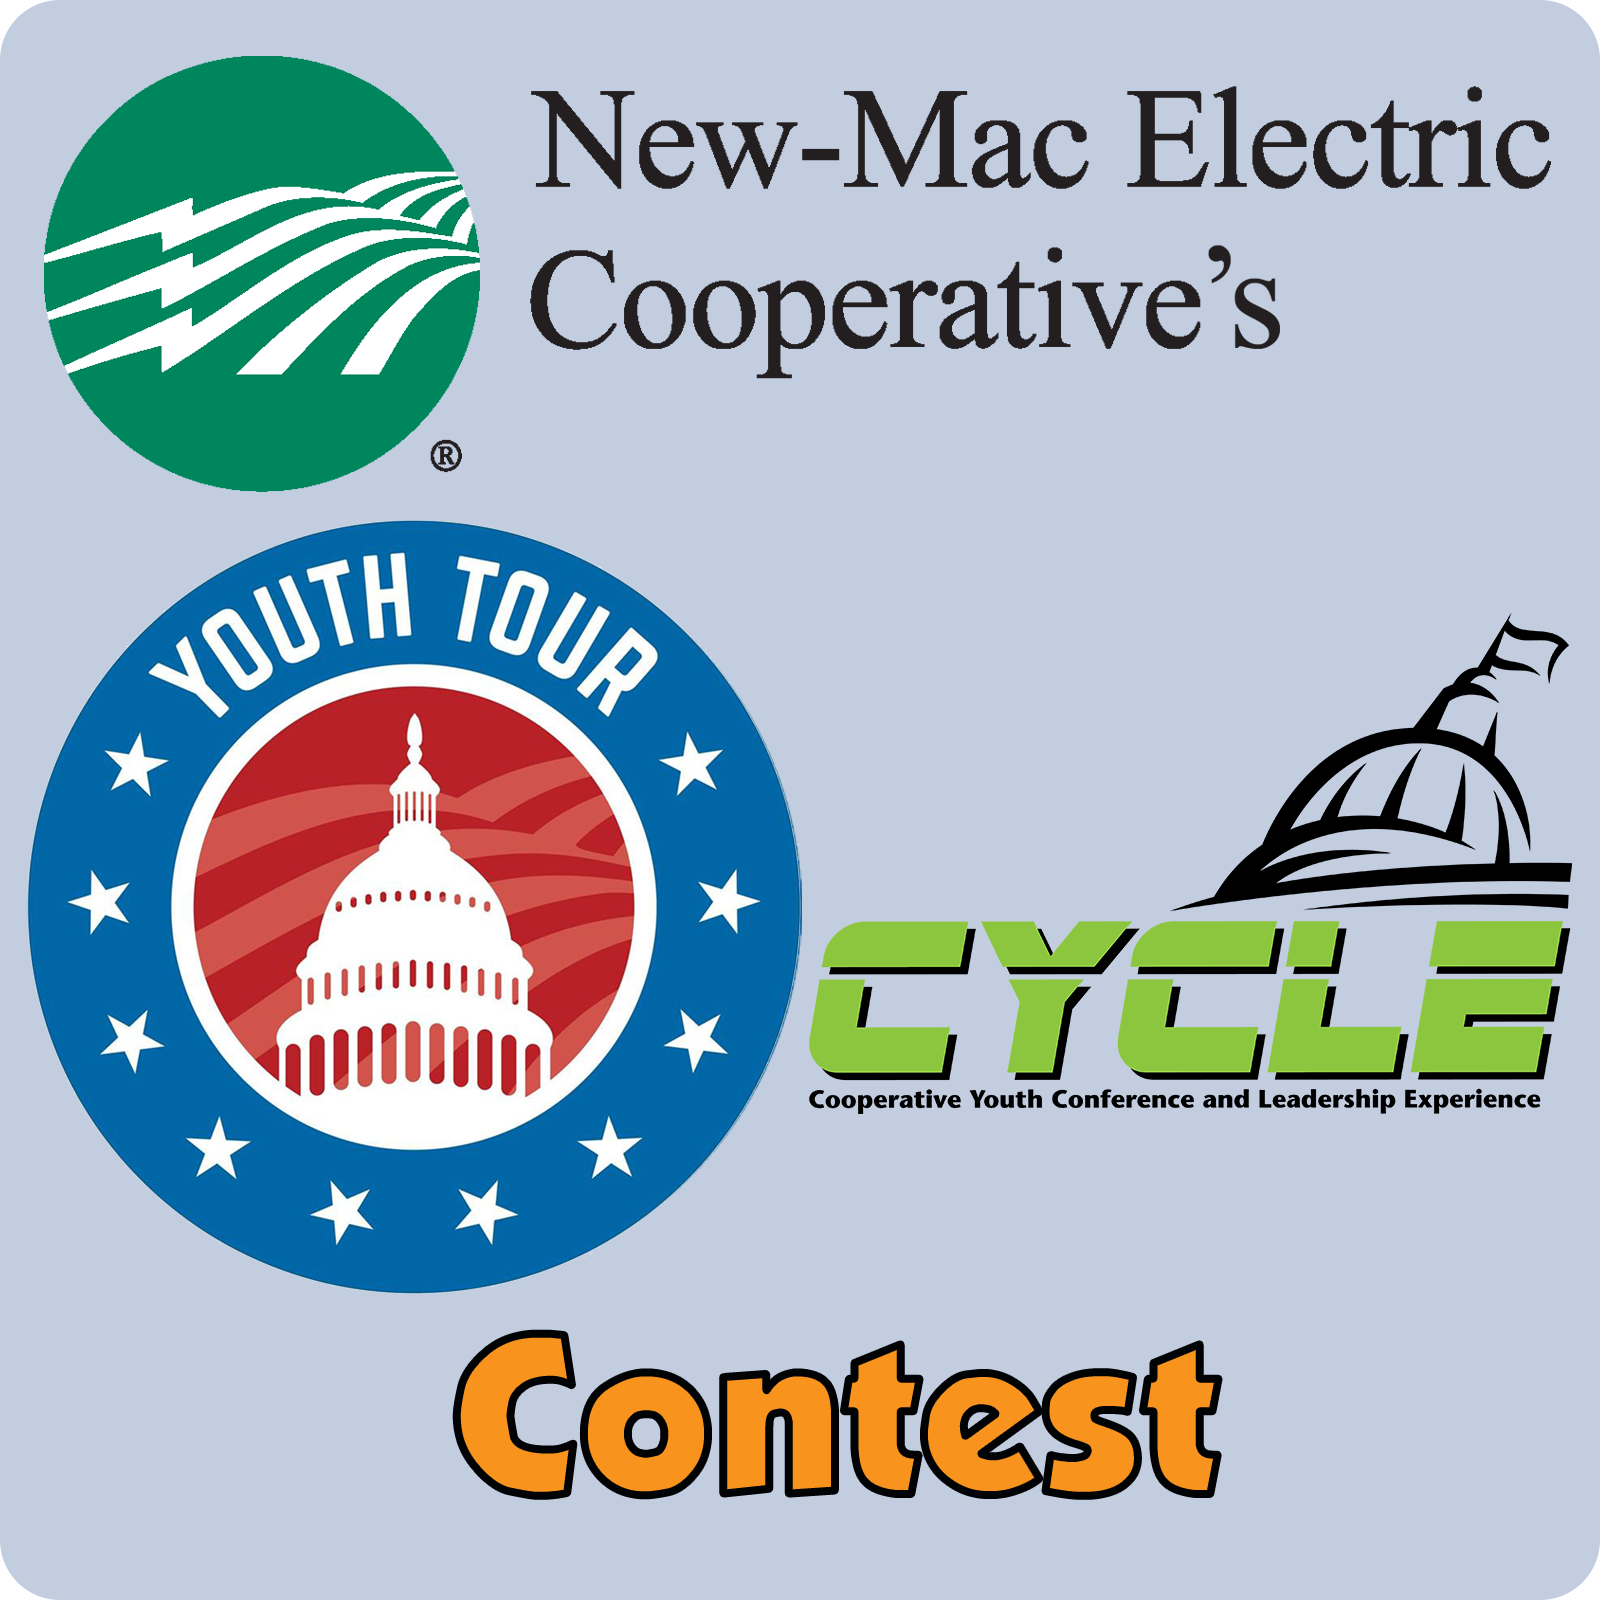 Youth Tour CYCLE Contest